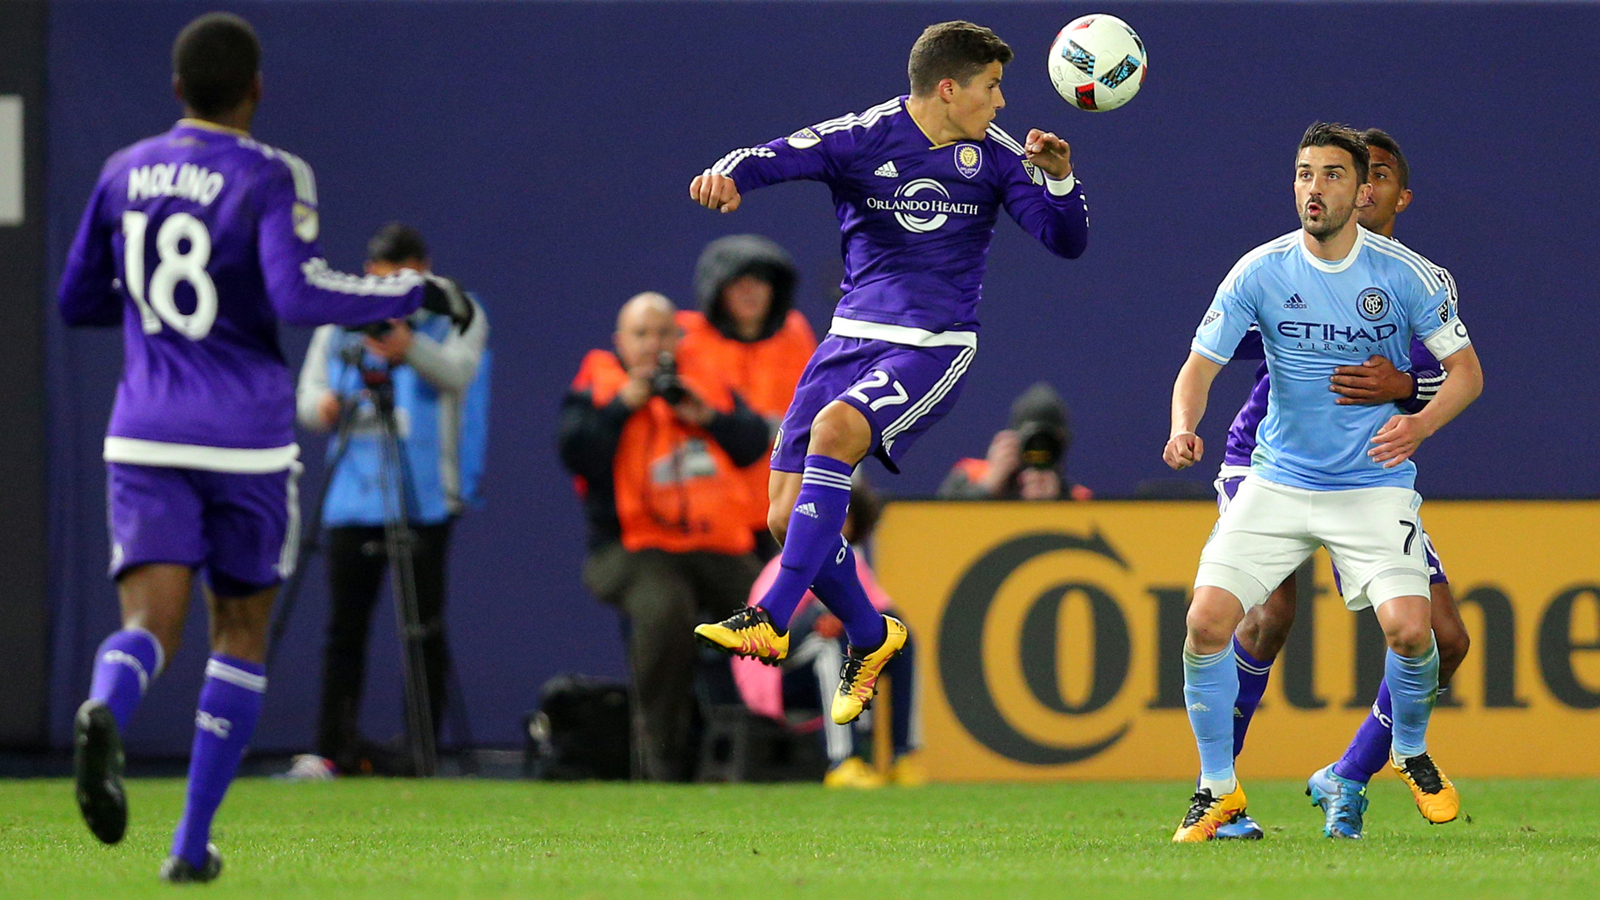 Orlando City's early goal leads them to victory over NYCFC